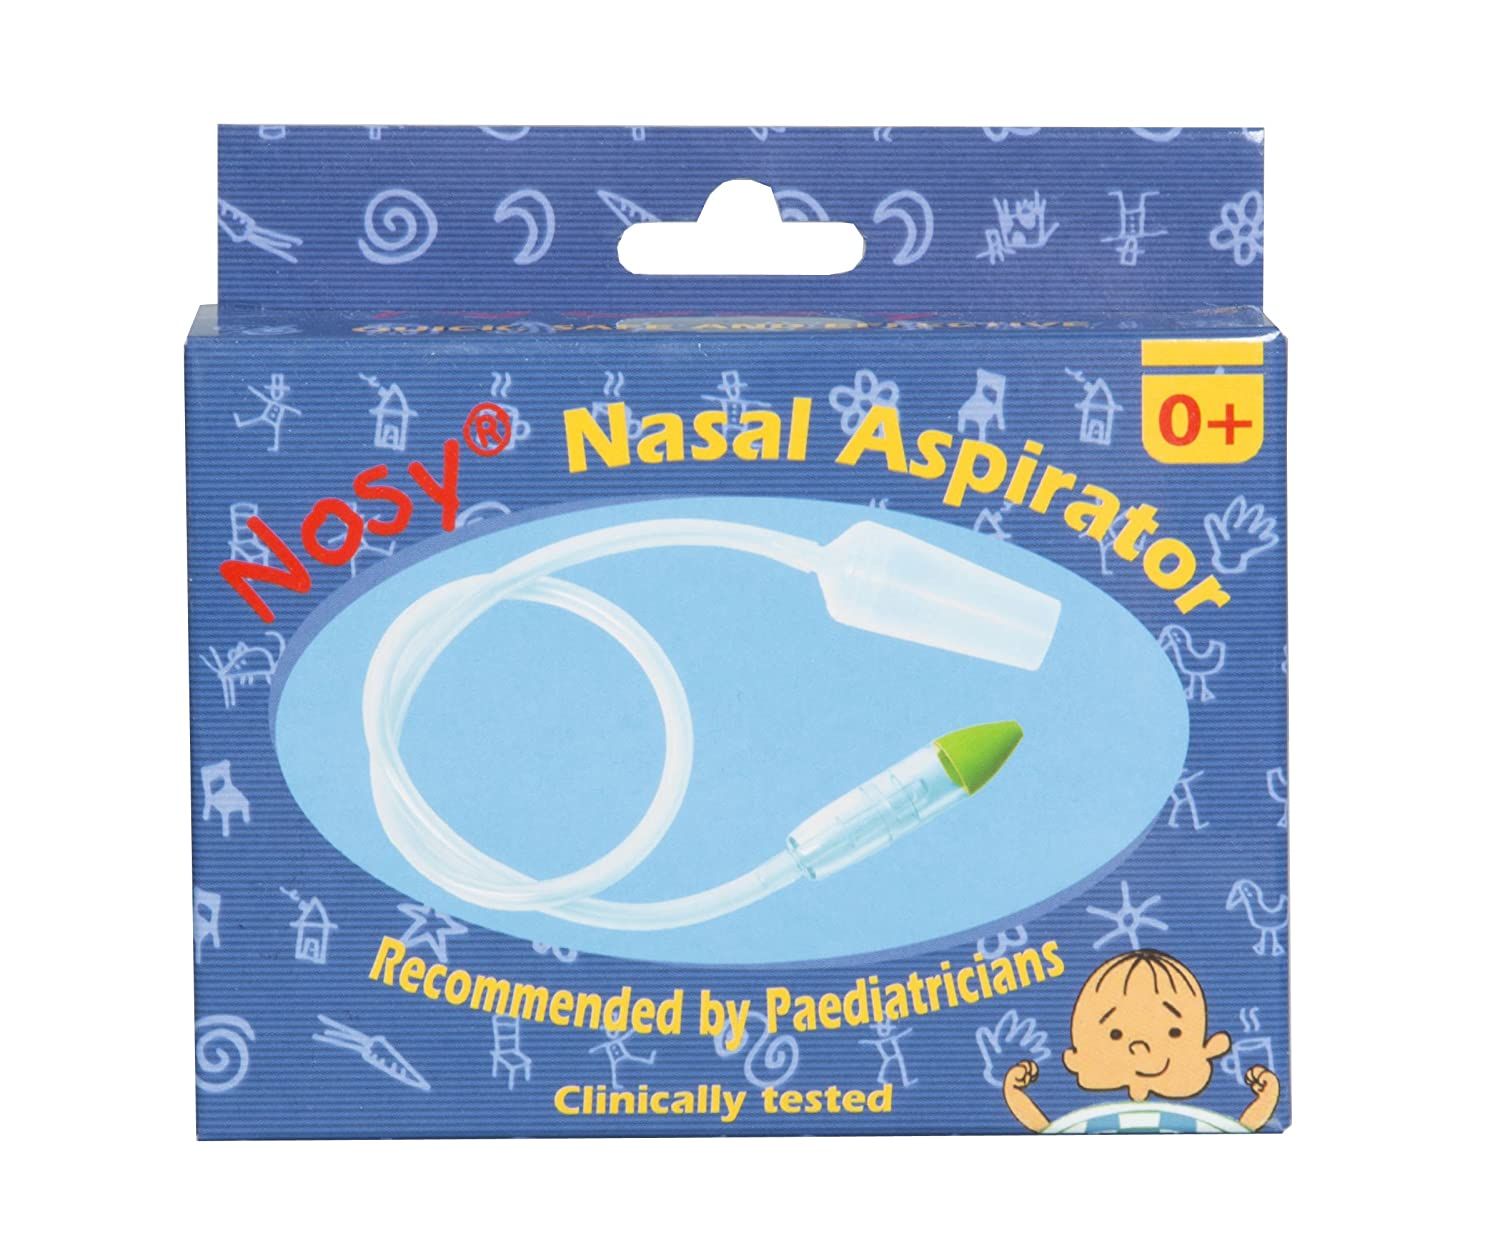 Nosy Nasal Aspirator/snotsucker -The Most Effective Nose Cleaner for Sinus Congestion Cold and flu. Safe, Gentle Fast Nose Suction for Newborns Infants